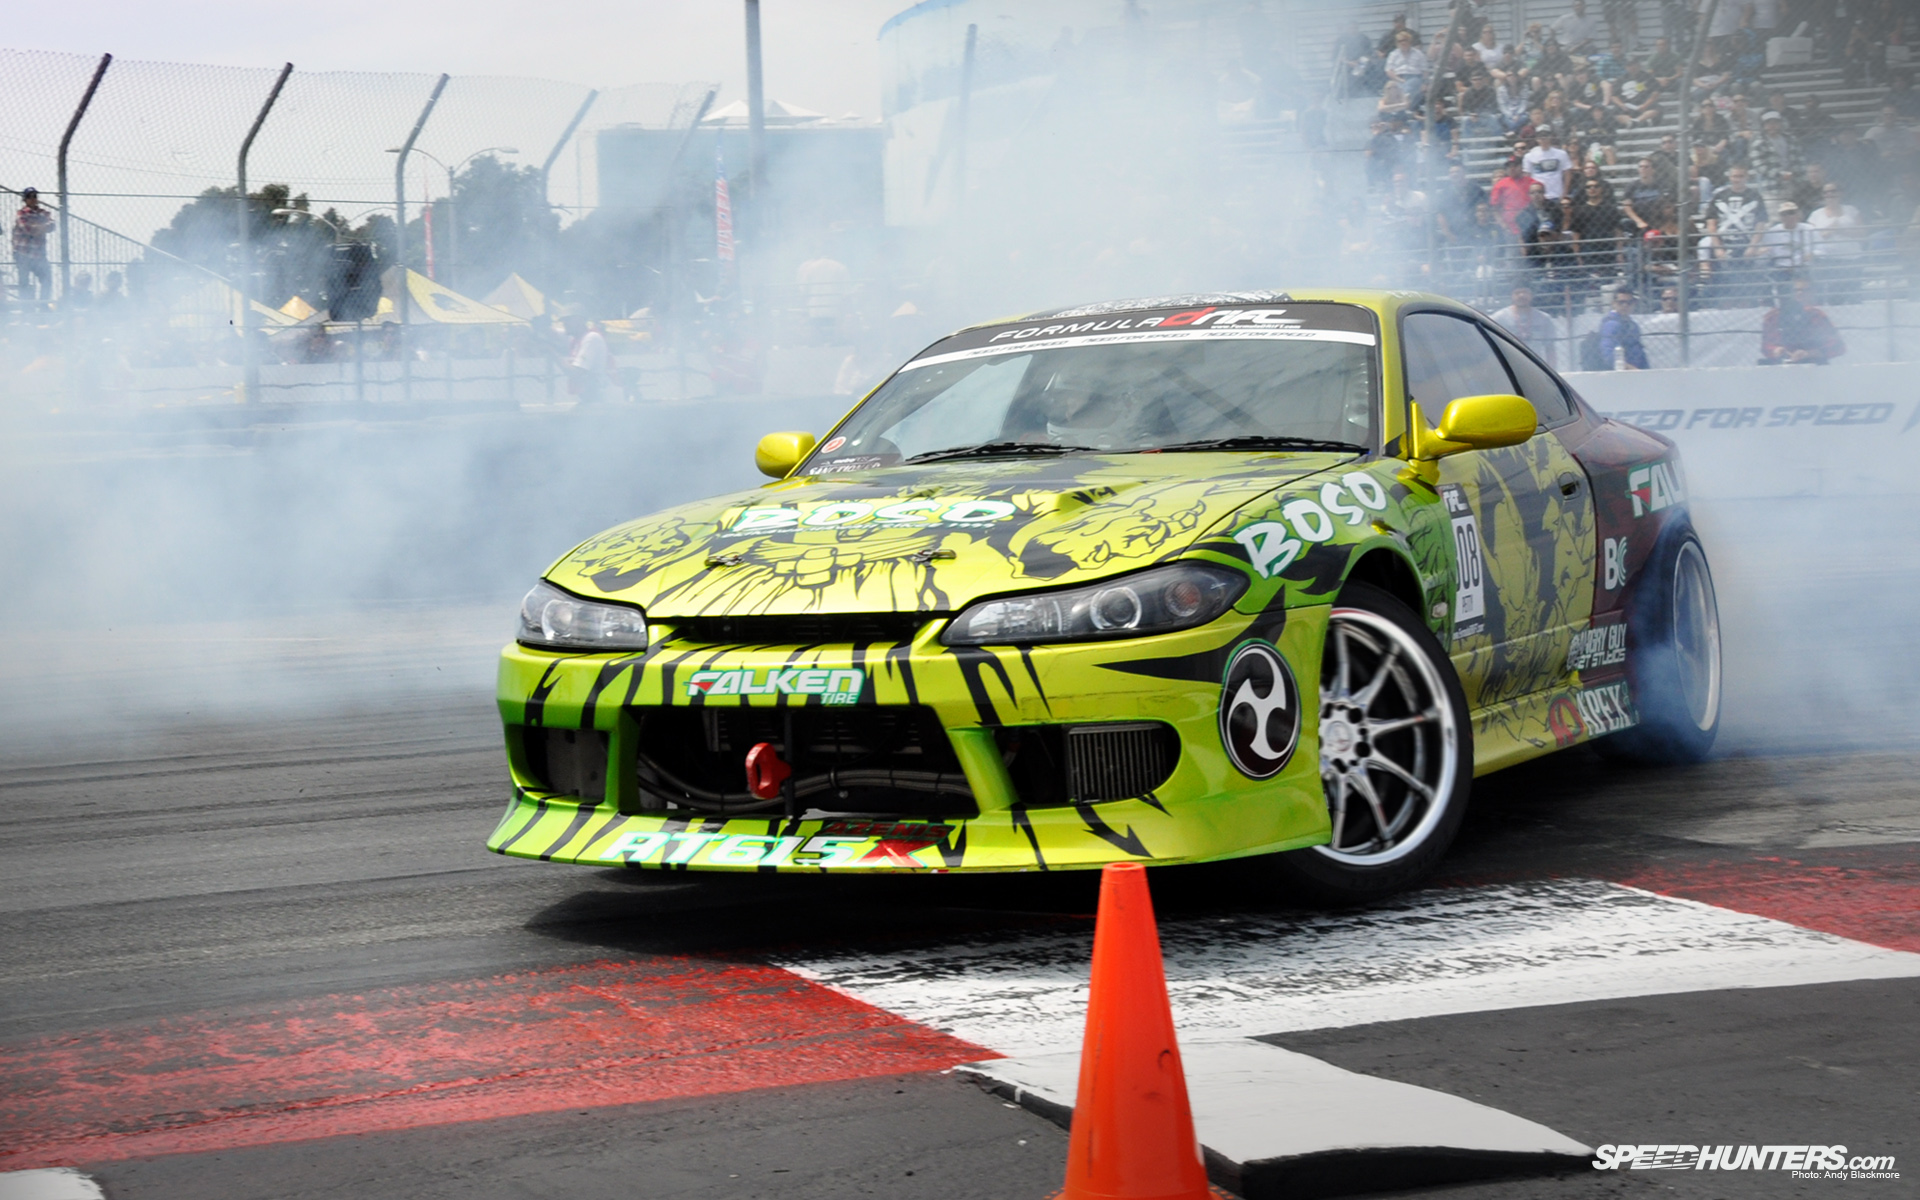 DRIFT WALLPAPERS FREE Wallpapers Background images   hippowallpapers 1920x1200